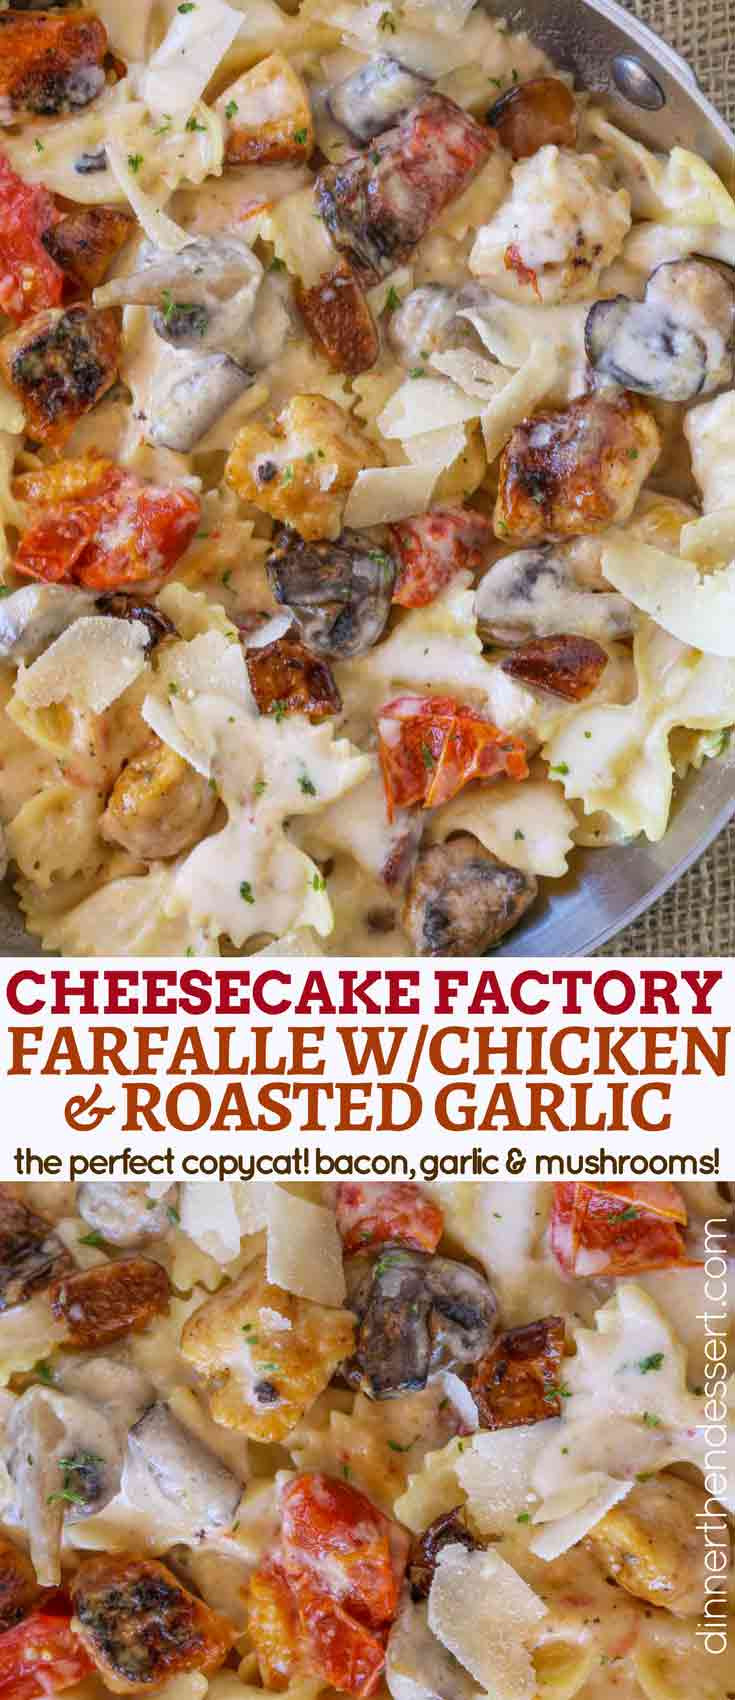 Farfalle With Chicken And Roasted Garlic  The Cheesecake Factory Farfalle with Chicken and Roasted